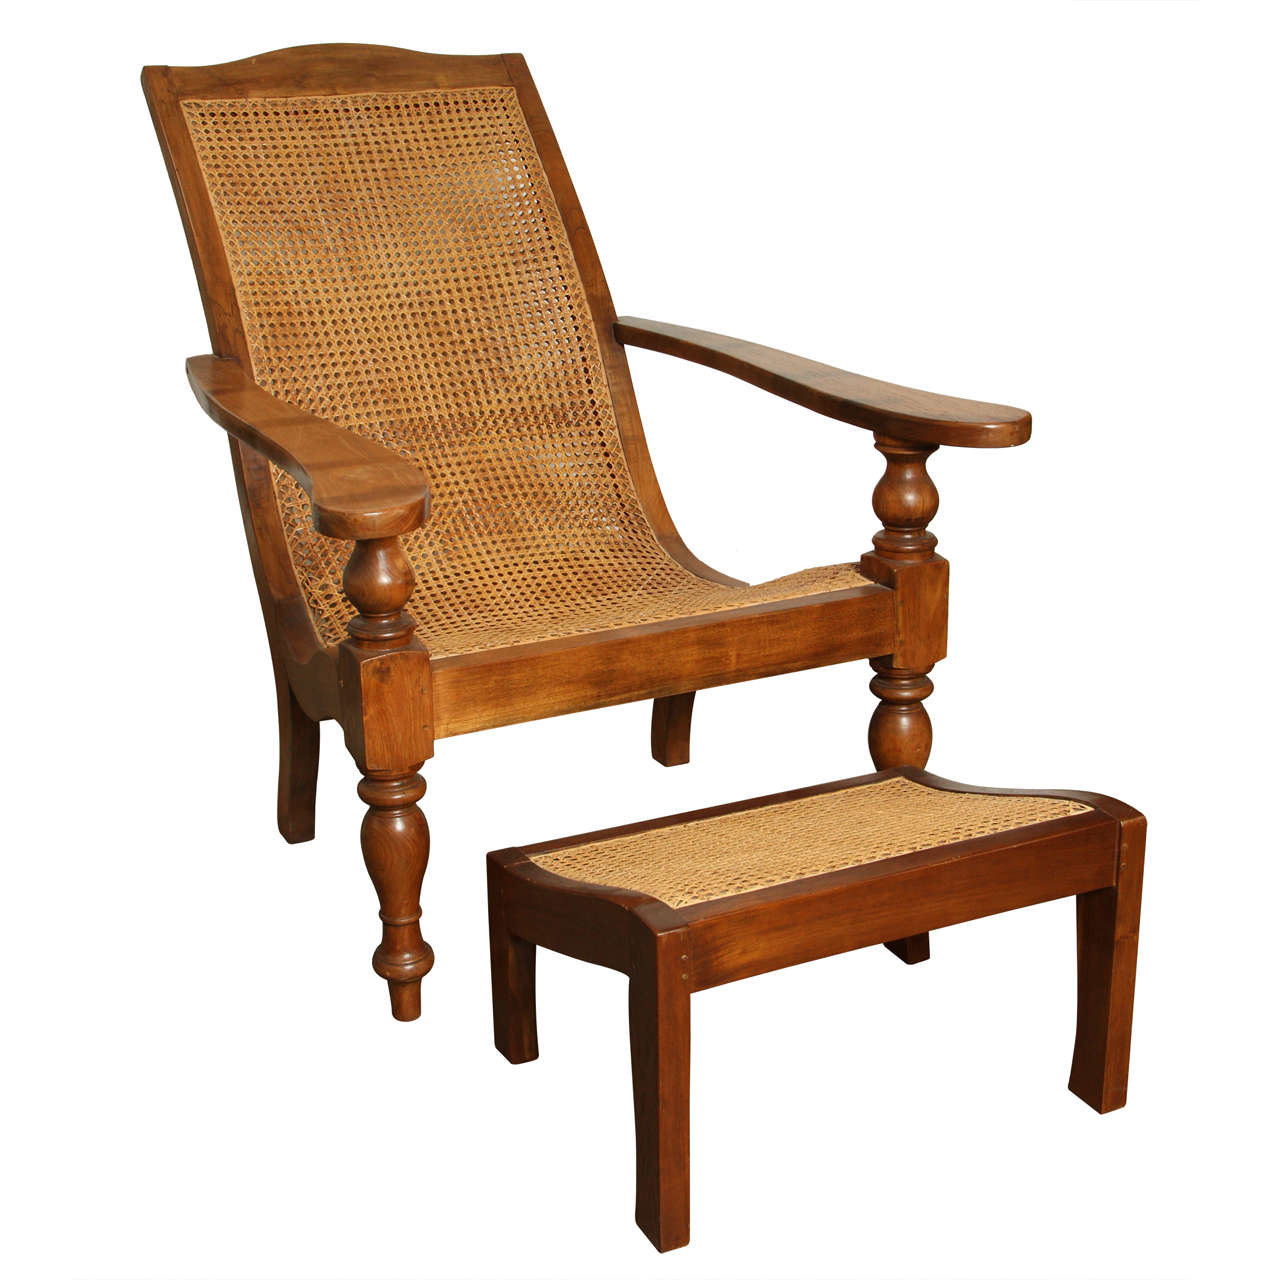 plantation style chairs best ferdinand in anglo indian chair and ottoman at 1stdibs for sale